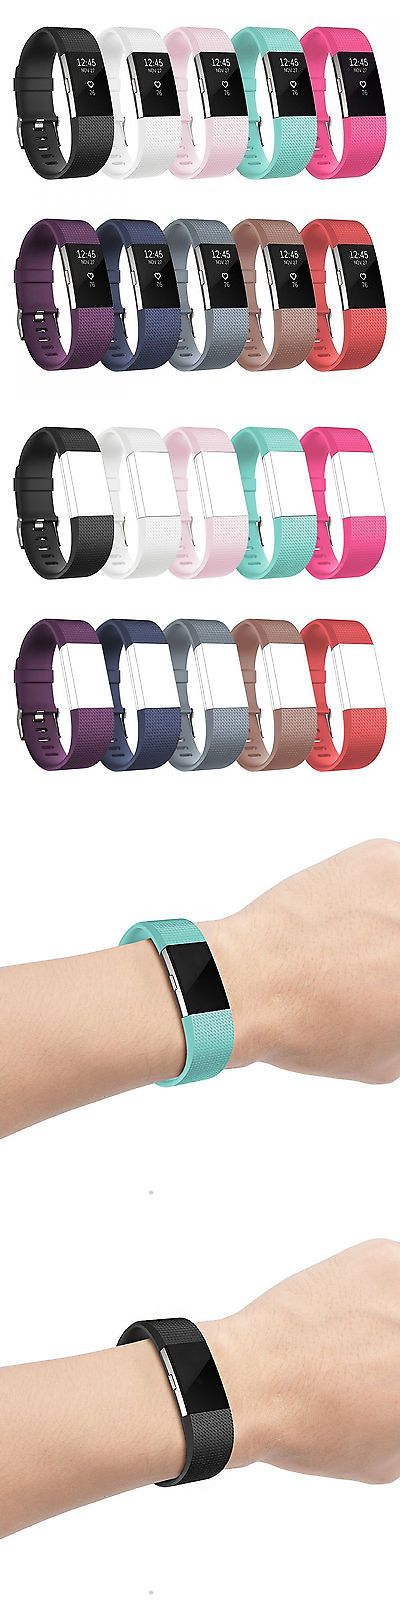 Fit Tech Parts and Accessories 179799: 10 Color Pack Fitbit Charge 2 Replacement Bracelet Band Watch Metal Buckle New -> BUY IT NOW ONLY: $35.41 on eBay!